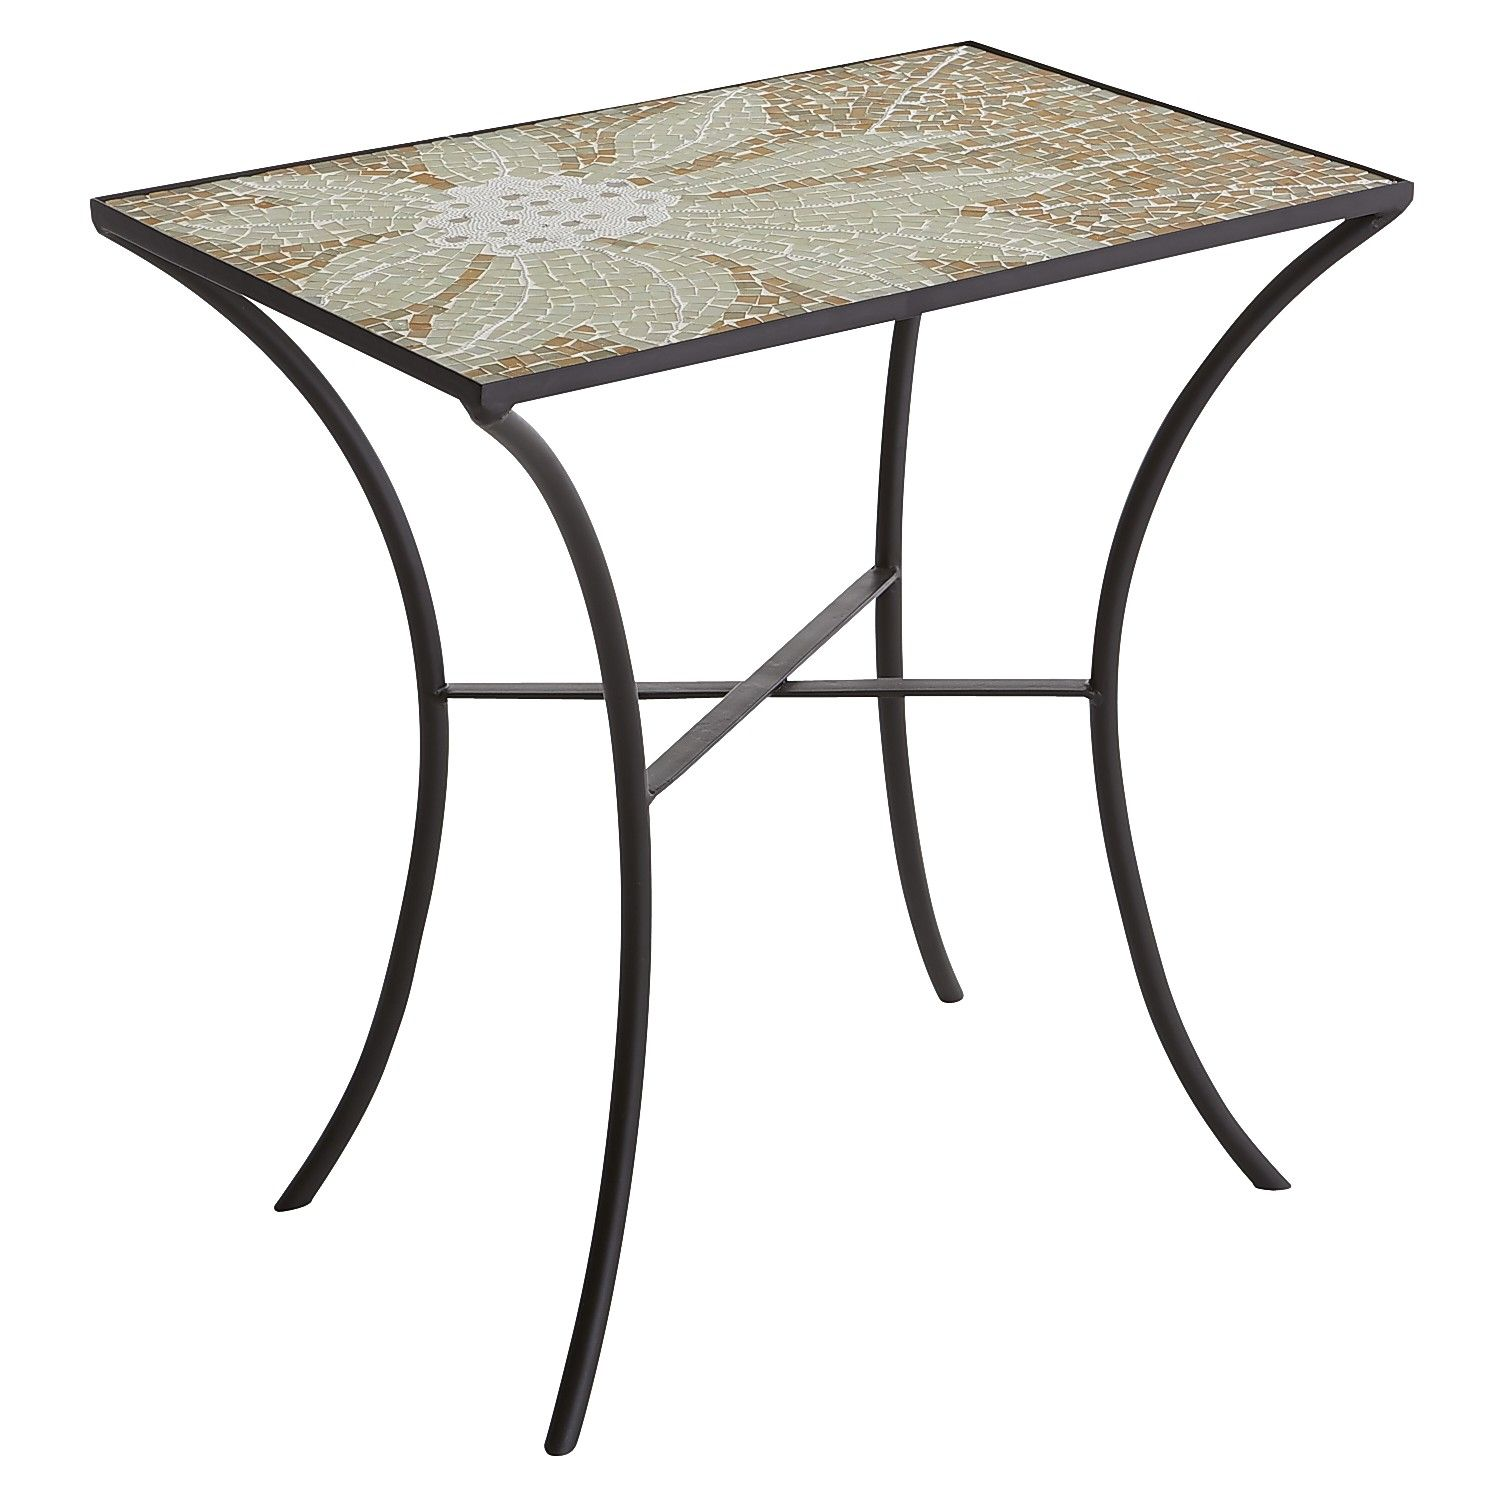 multi colored camellia accent table wrought iron outdoor metal bar dining set lobby furniture pottery barn square coffee corner end with storage serving circular bedside target